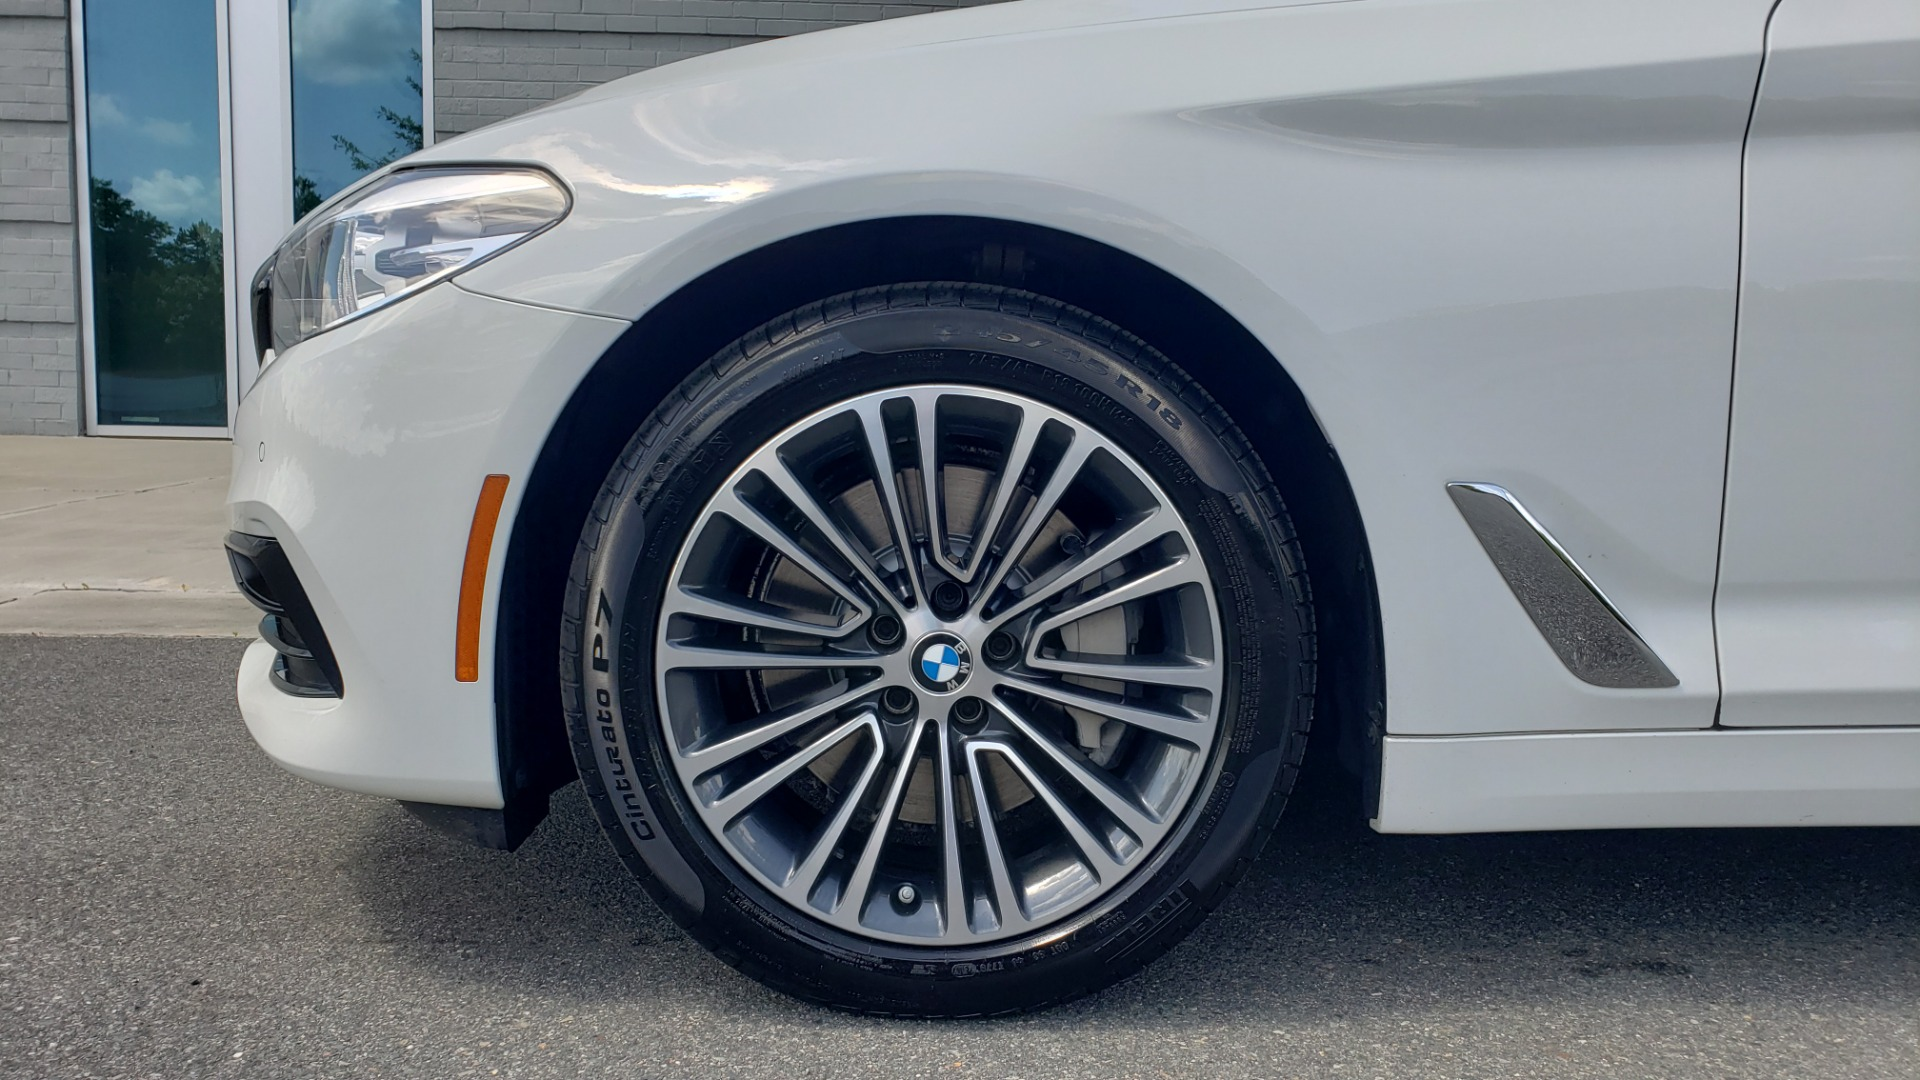 Used 2018 BMW 5 SERIES 530I XDRIVE PREMIUM / PARK ASST / NAV / SUNROOF / REARIEW for sale $37,795 at Formula Imports in Charlotte NC 28227 74